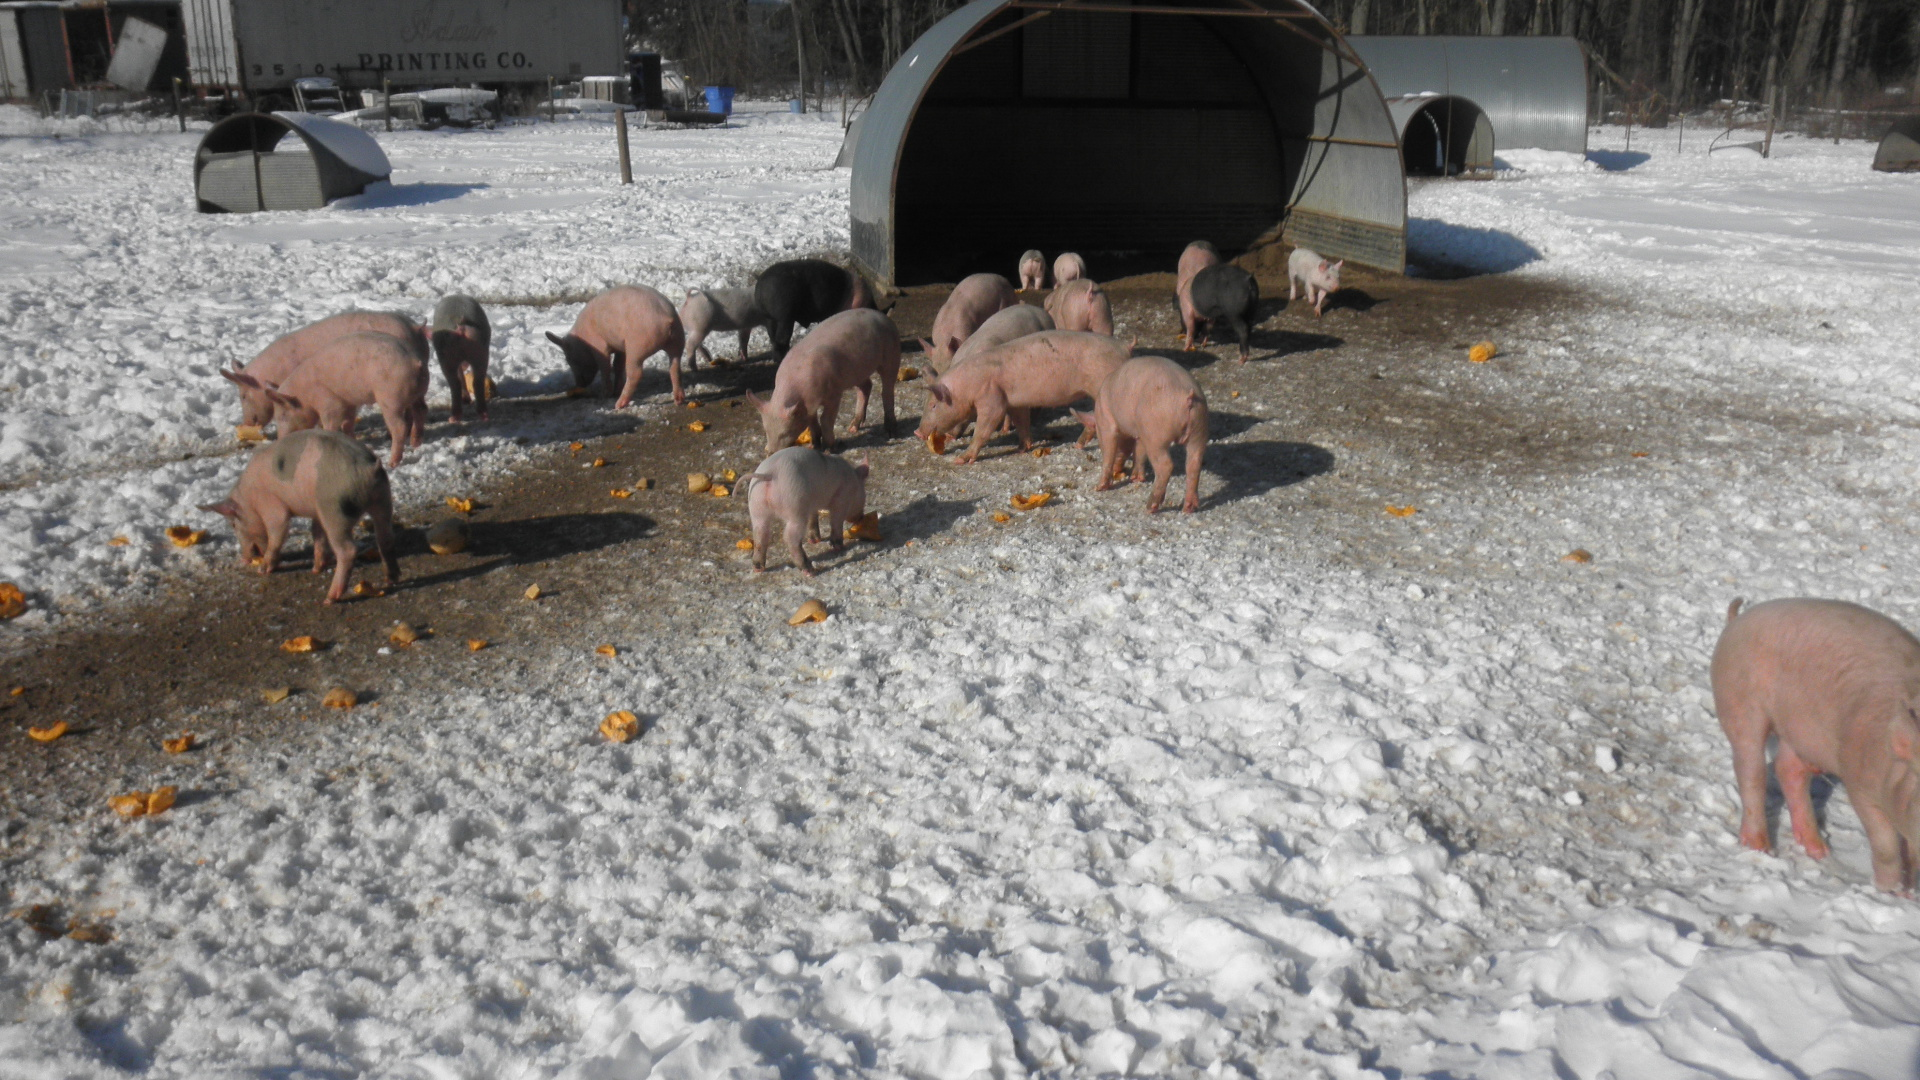 A herd of pigs roaming around their field.